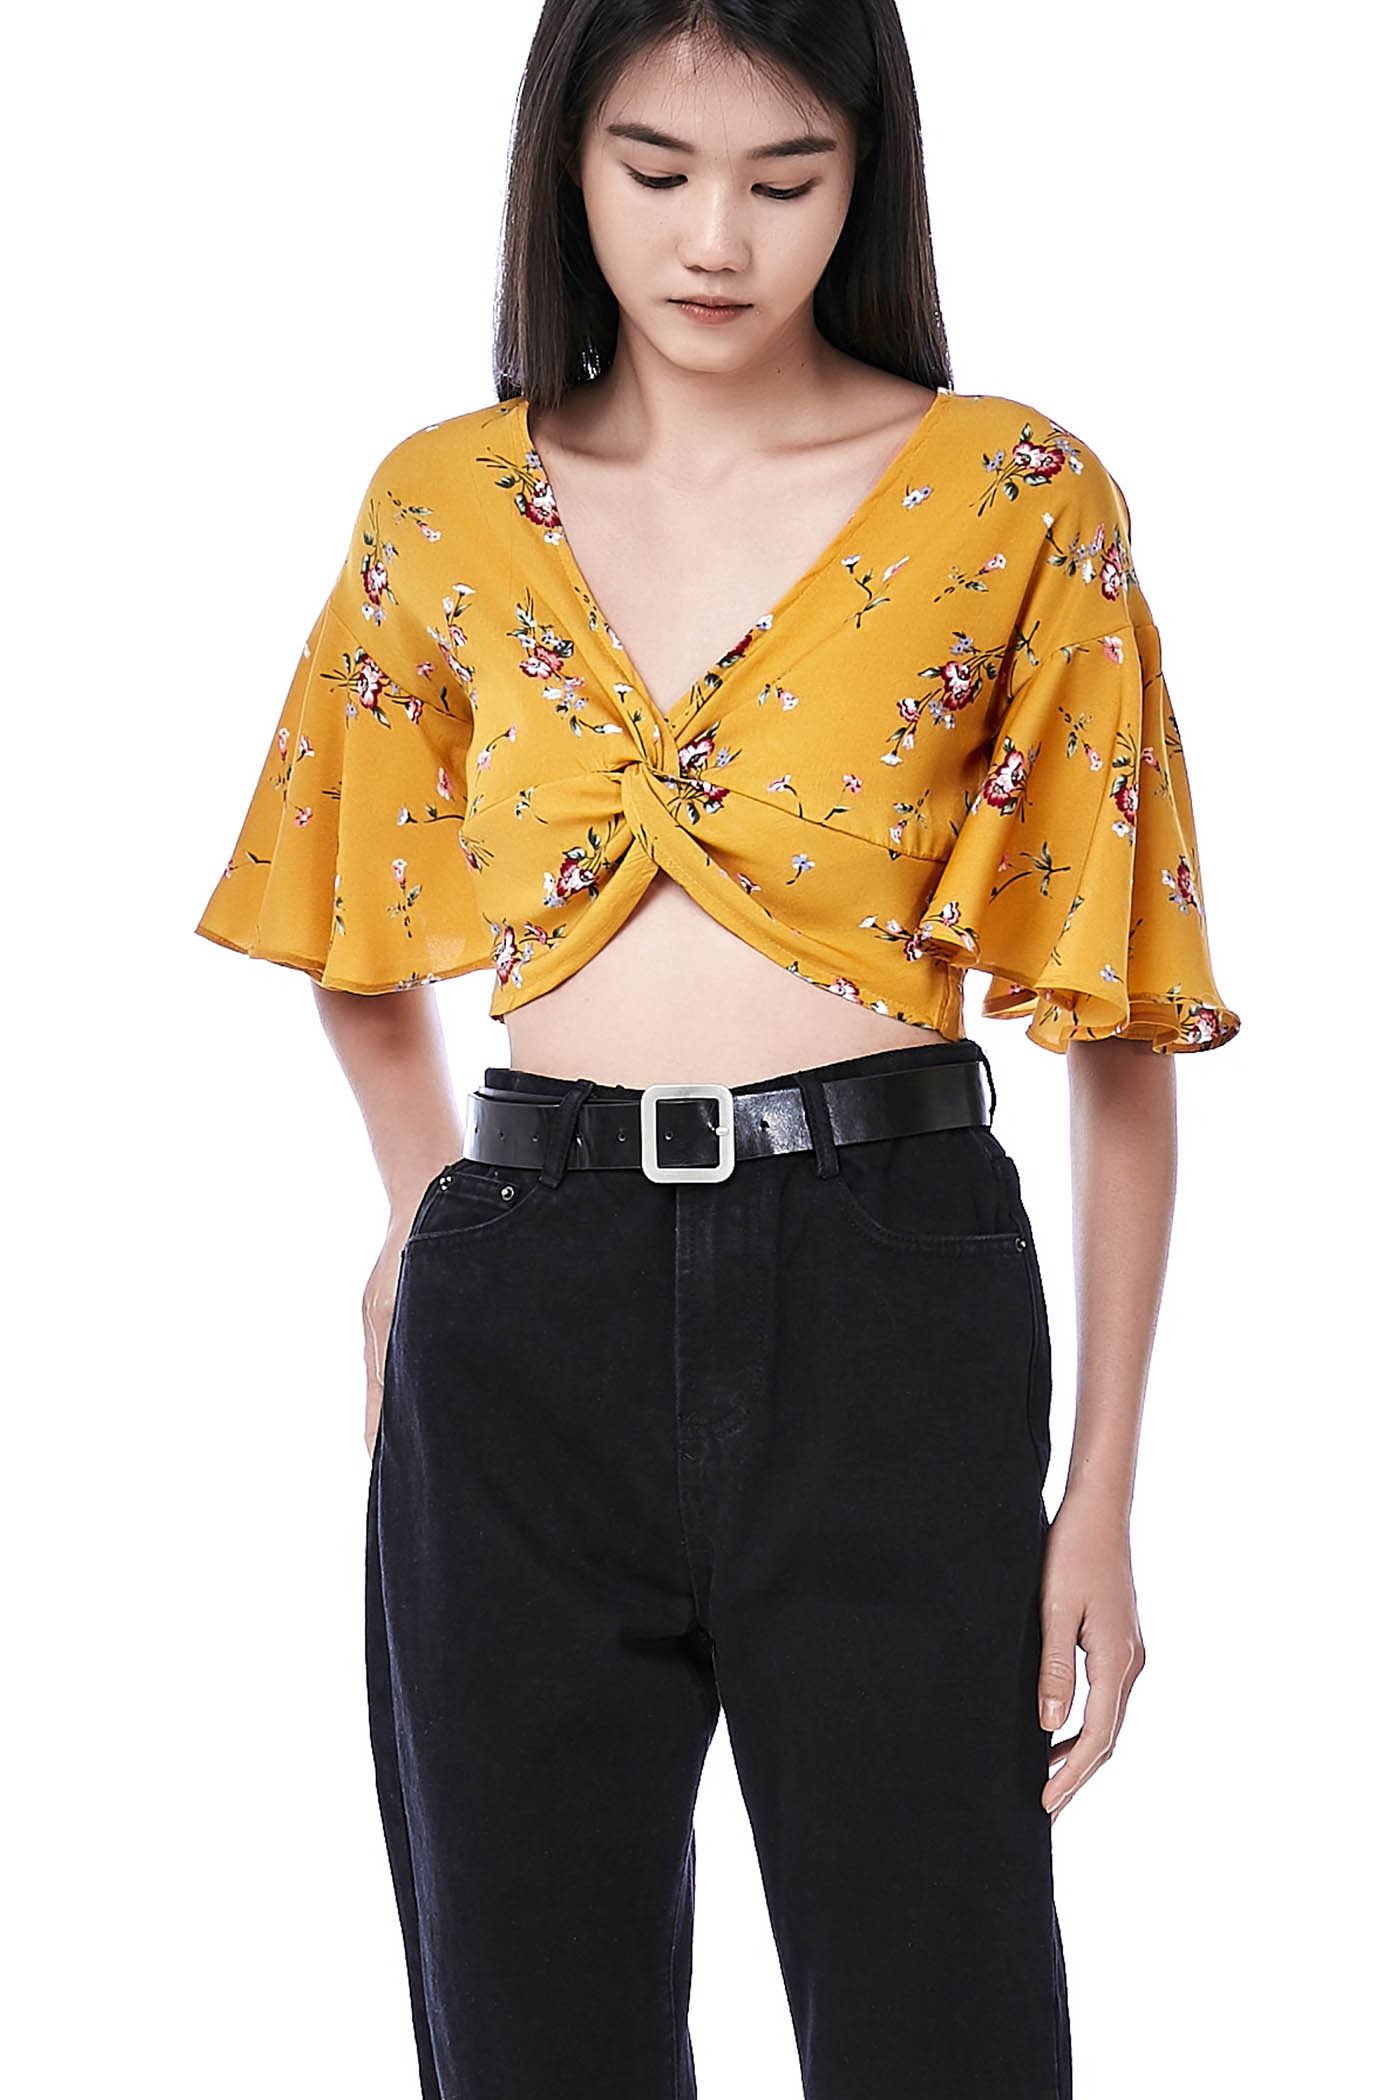 Eviy Knotted Crop Top